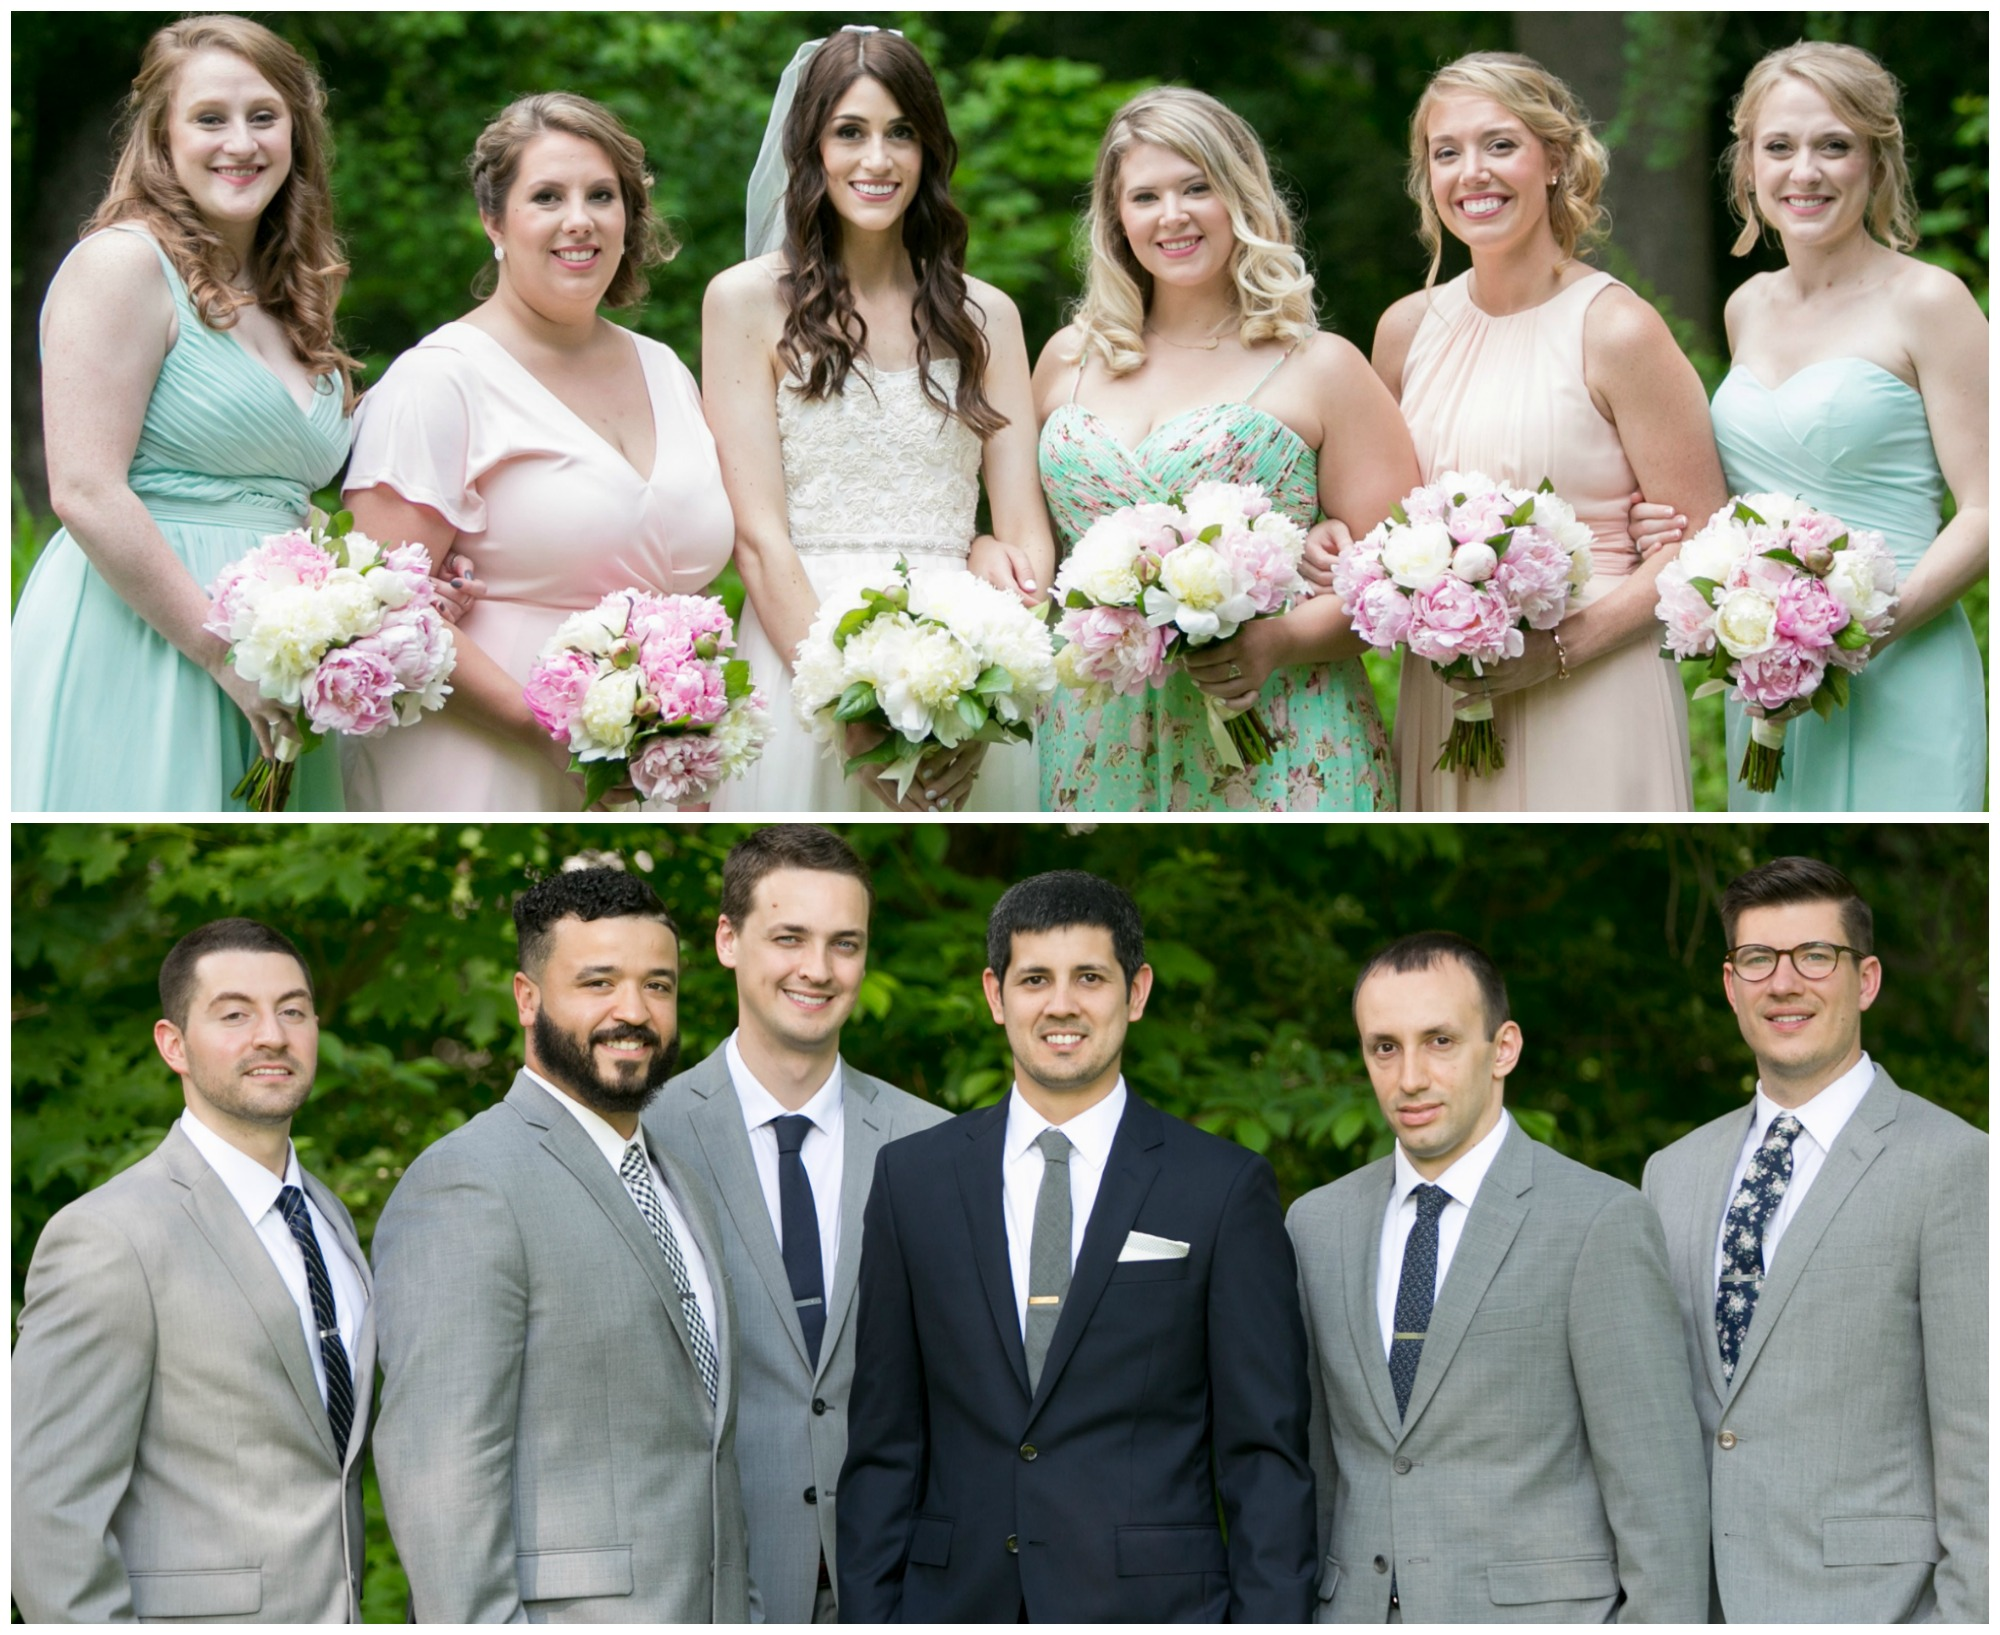 mismatched-wedding-party